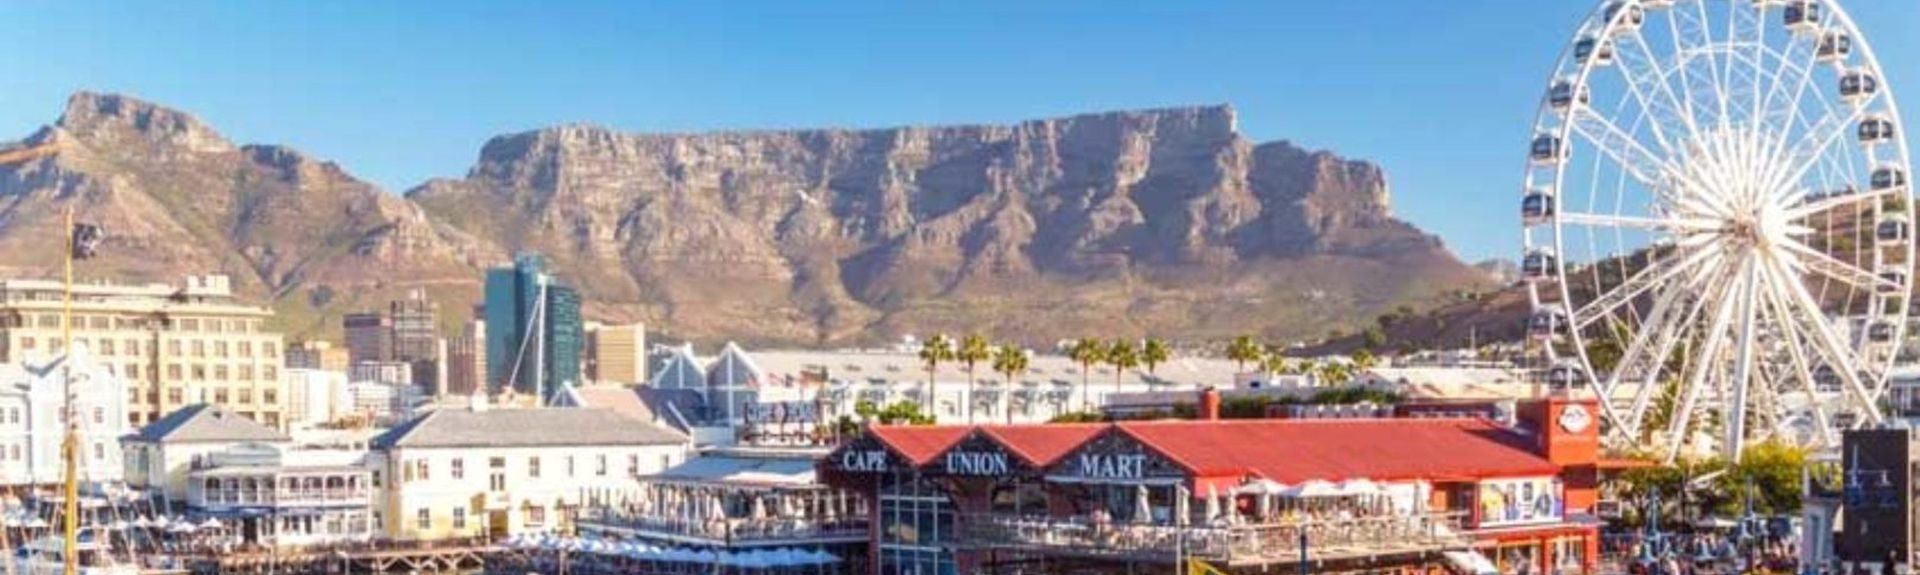 Canal Walk Shopping Centre, Kaapstad, West-Kaap, Zuid-Afrika